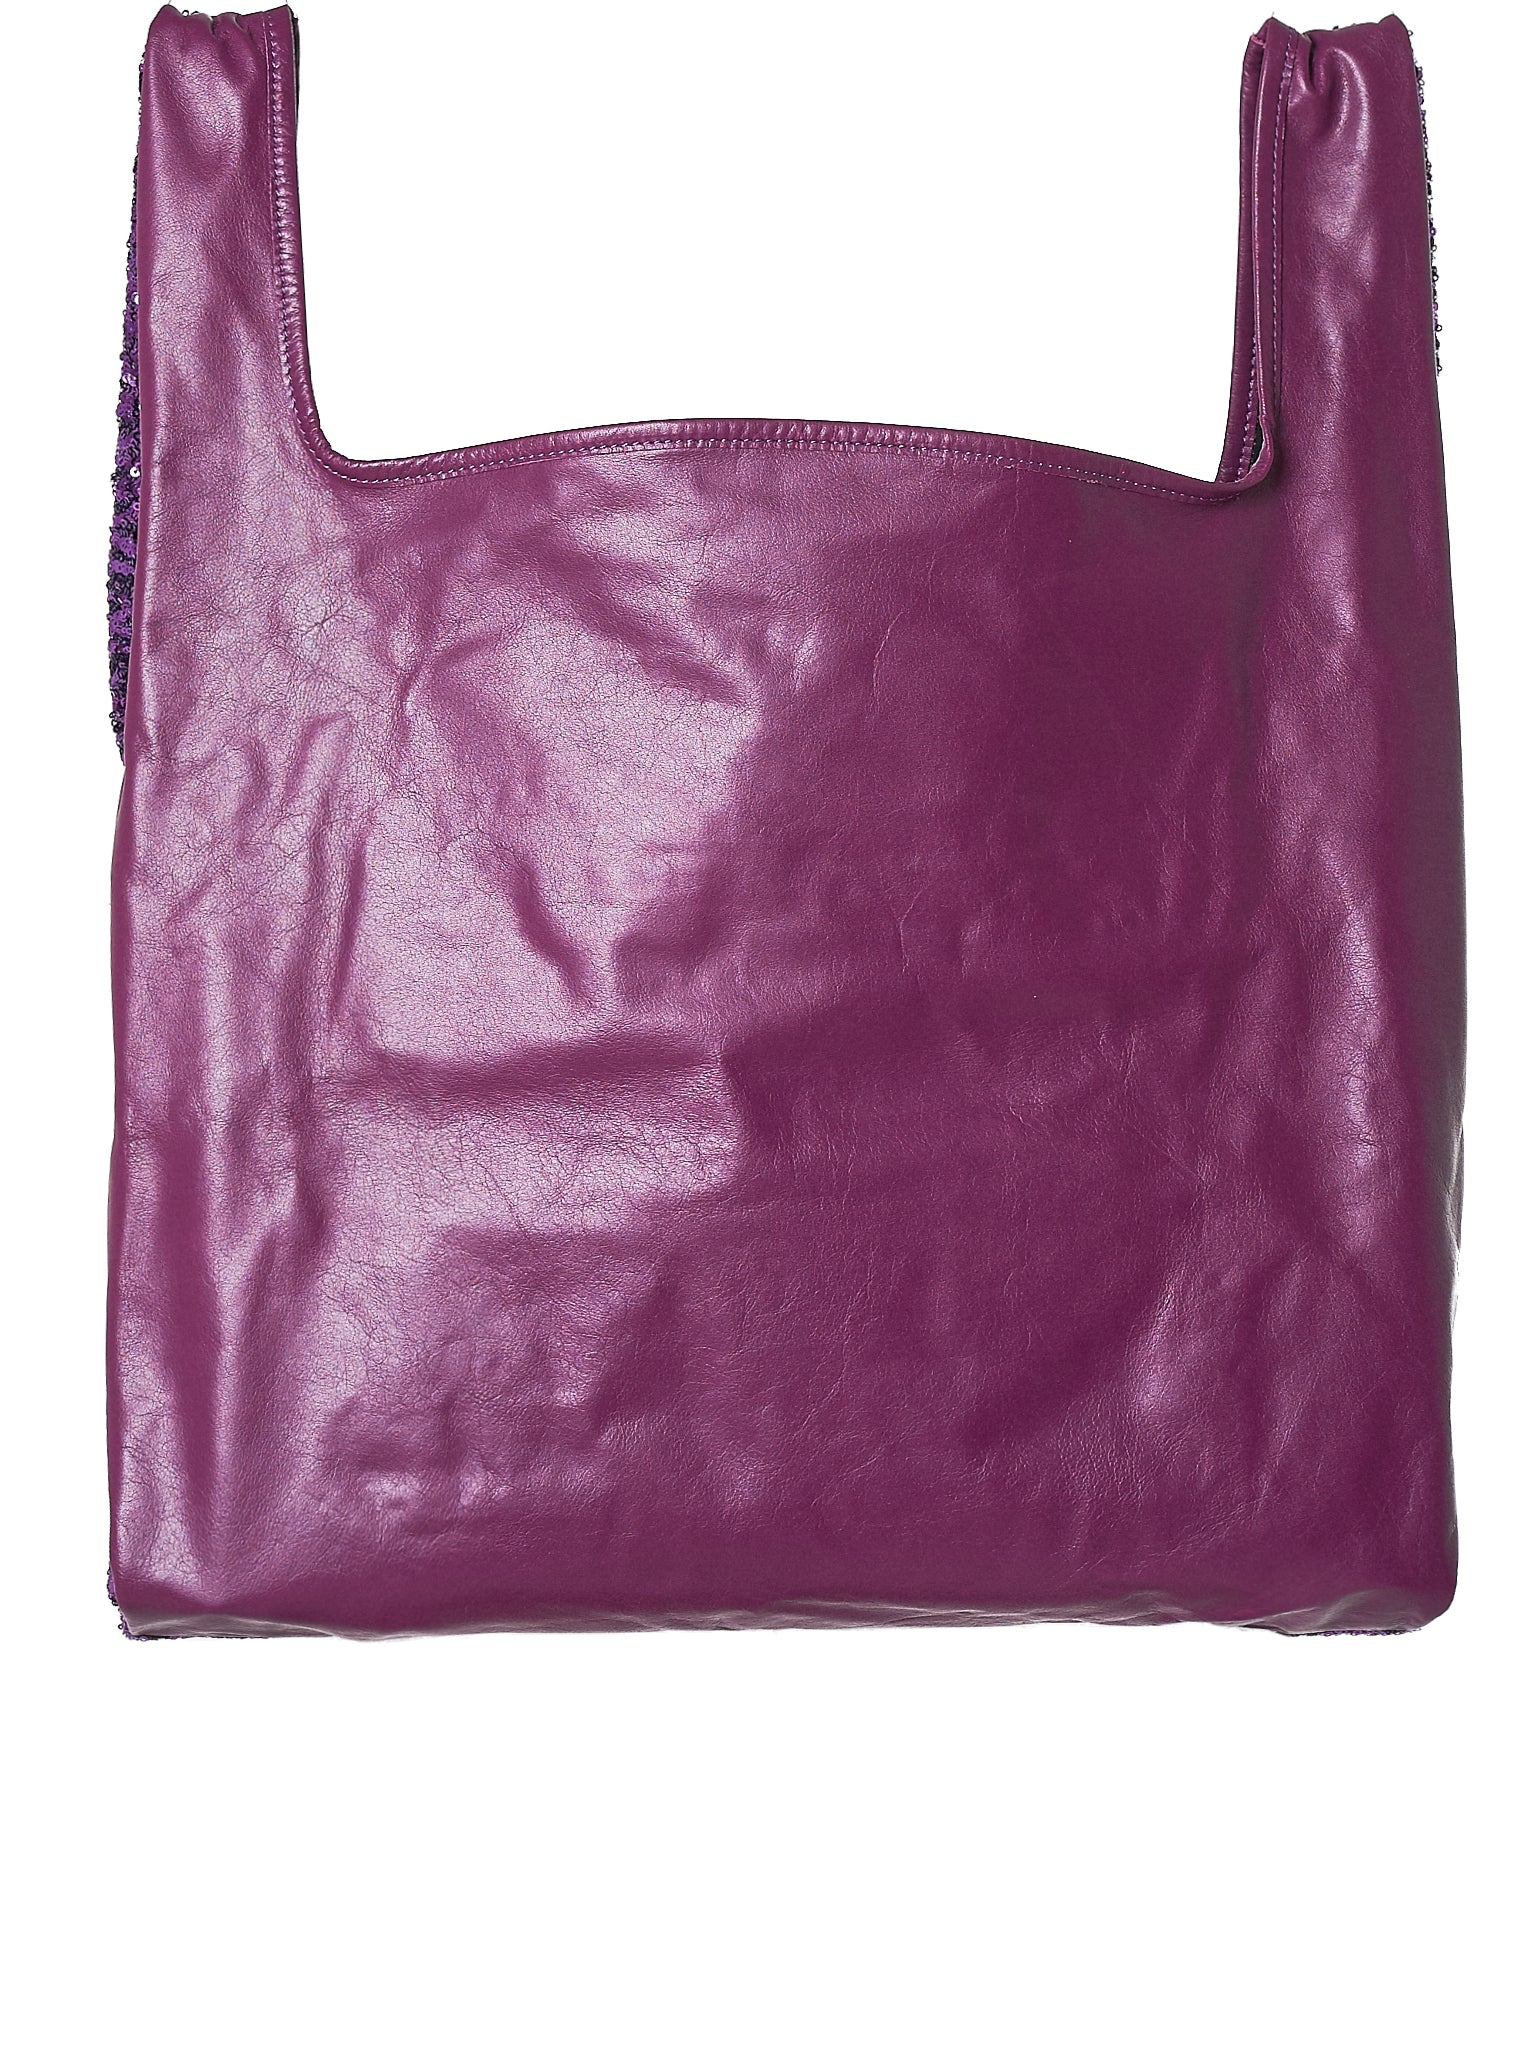 Sequined Tote Bag (JB-201-051-3-PURPLE)